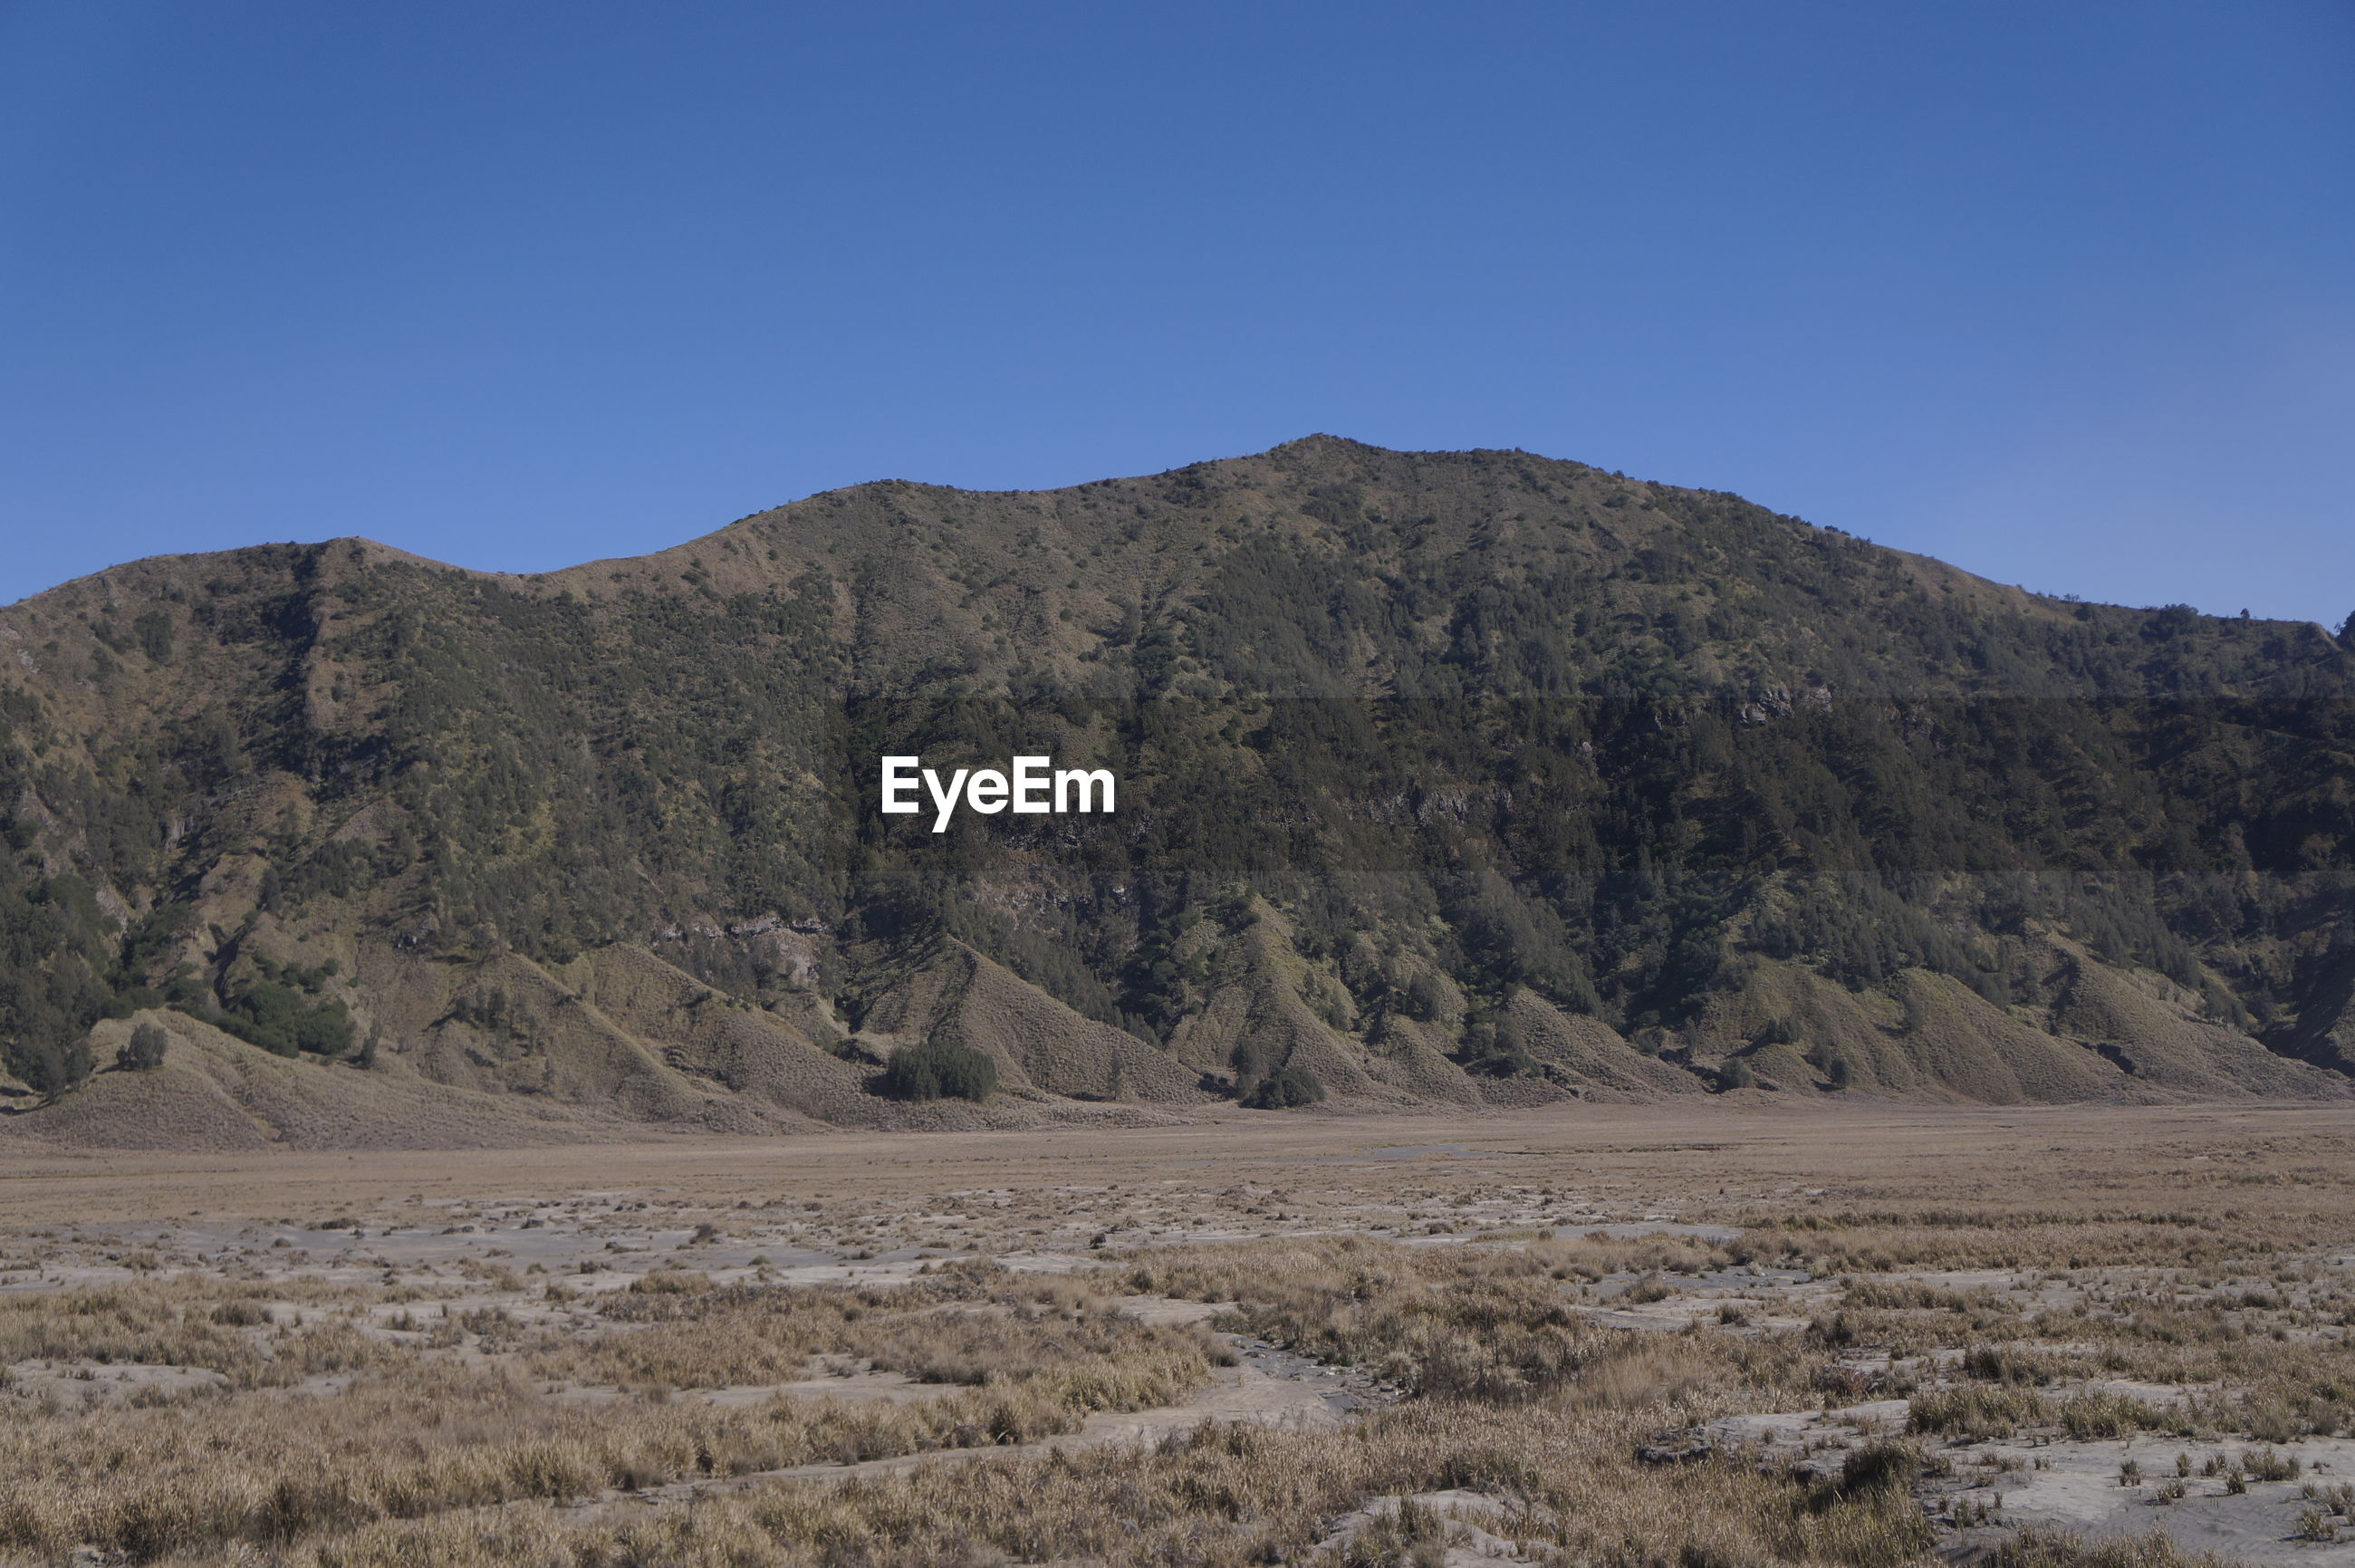 Bromo caldera is overgrown with dry and sandy grass.